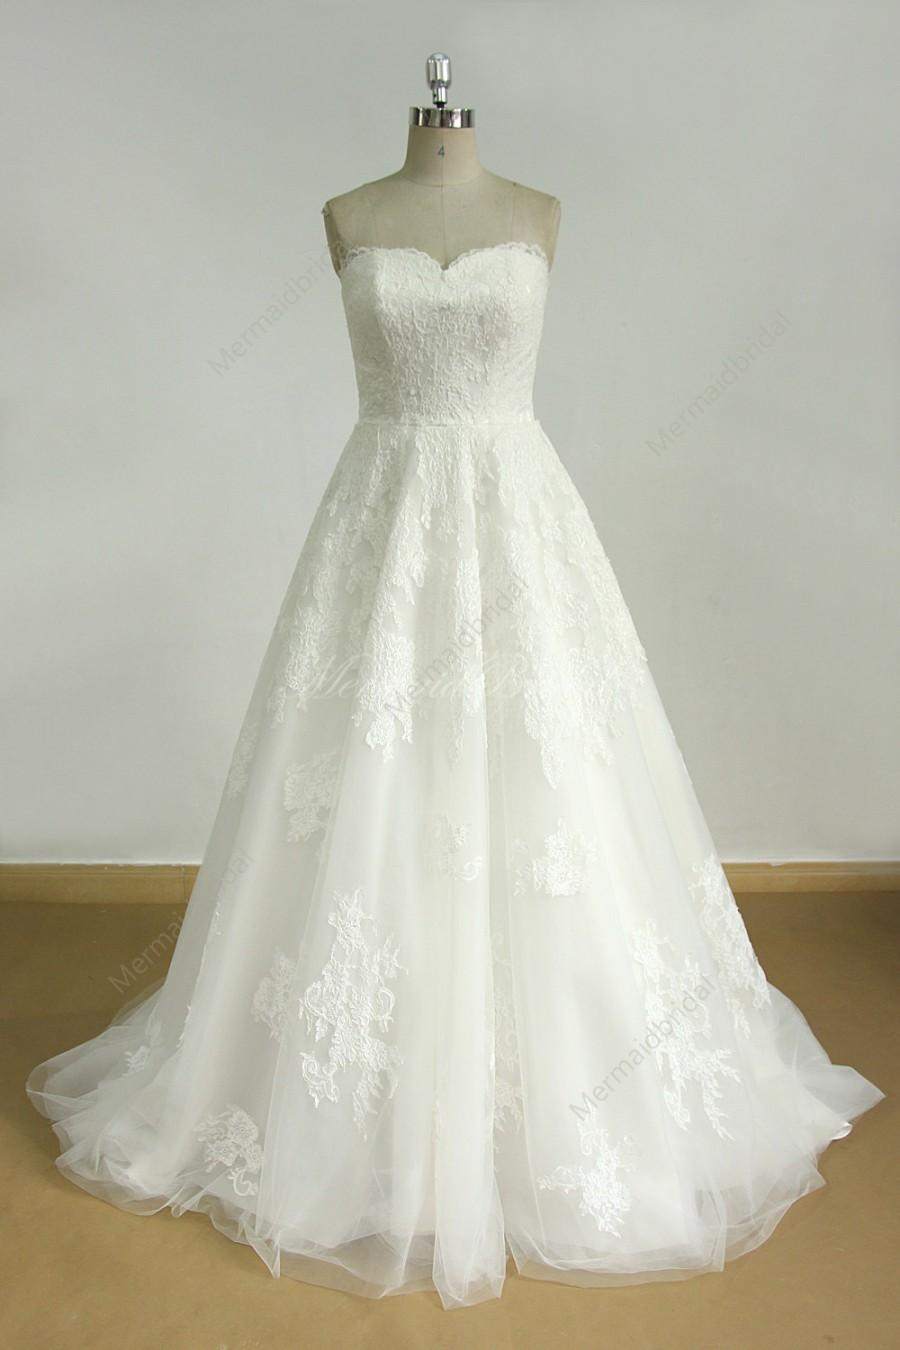 Wedding - Ivory a line tulle lace wedding dress with detachable beading sash